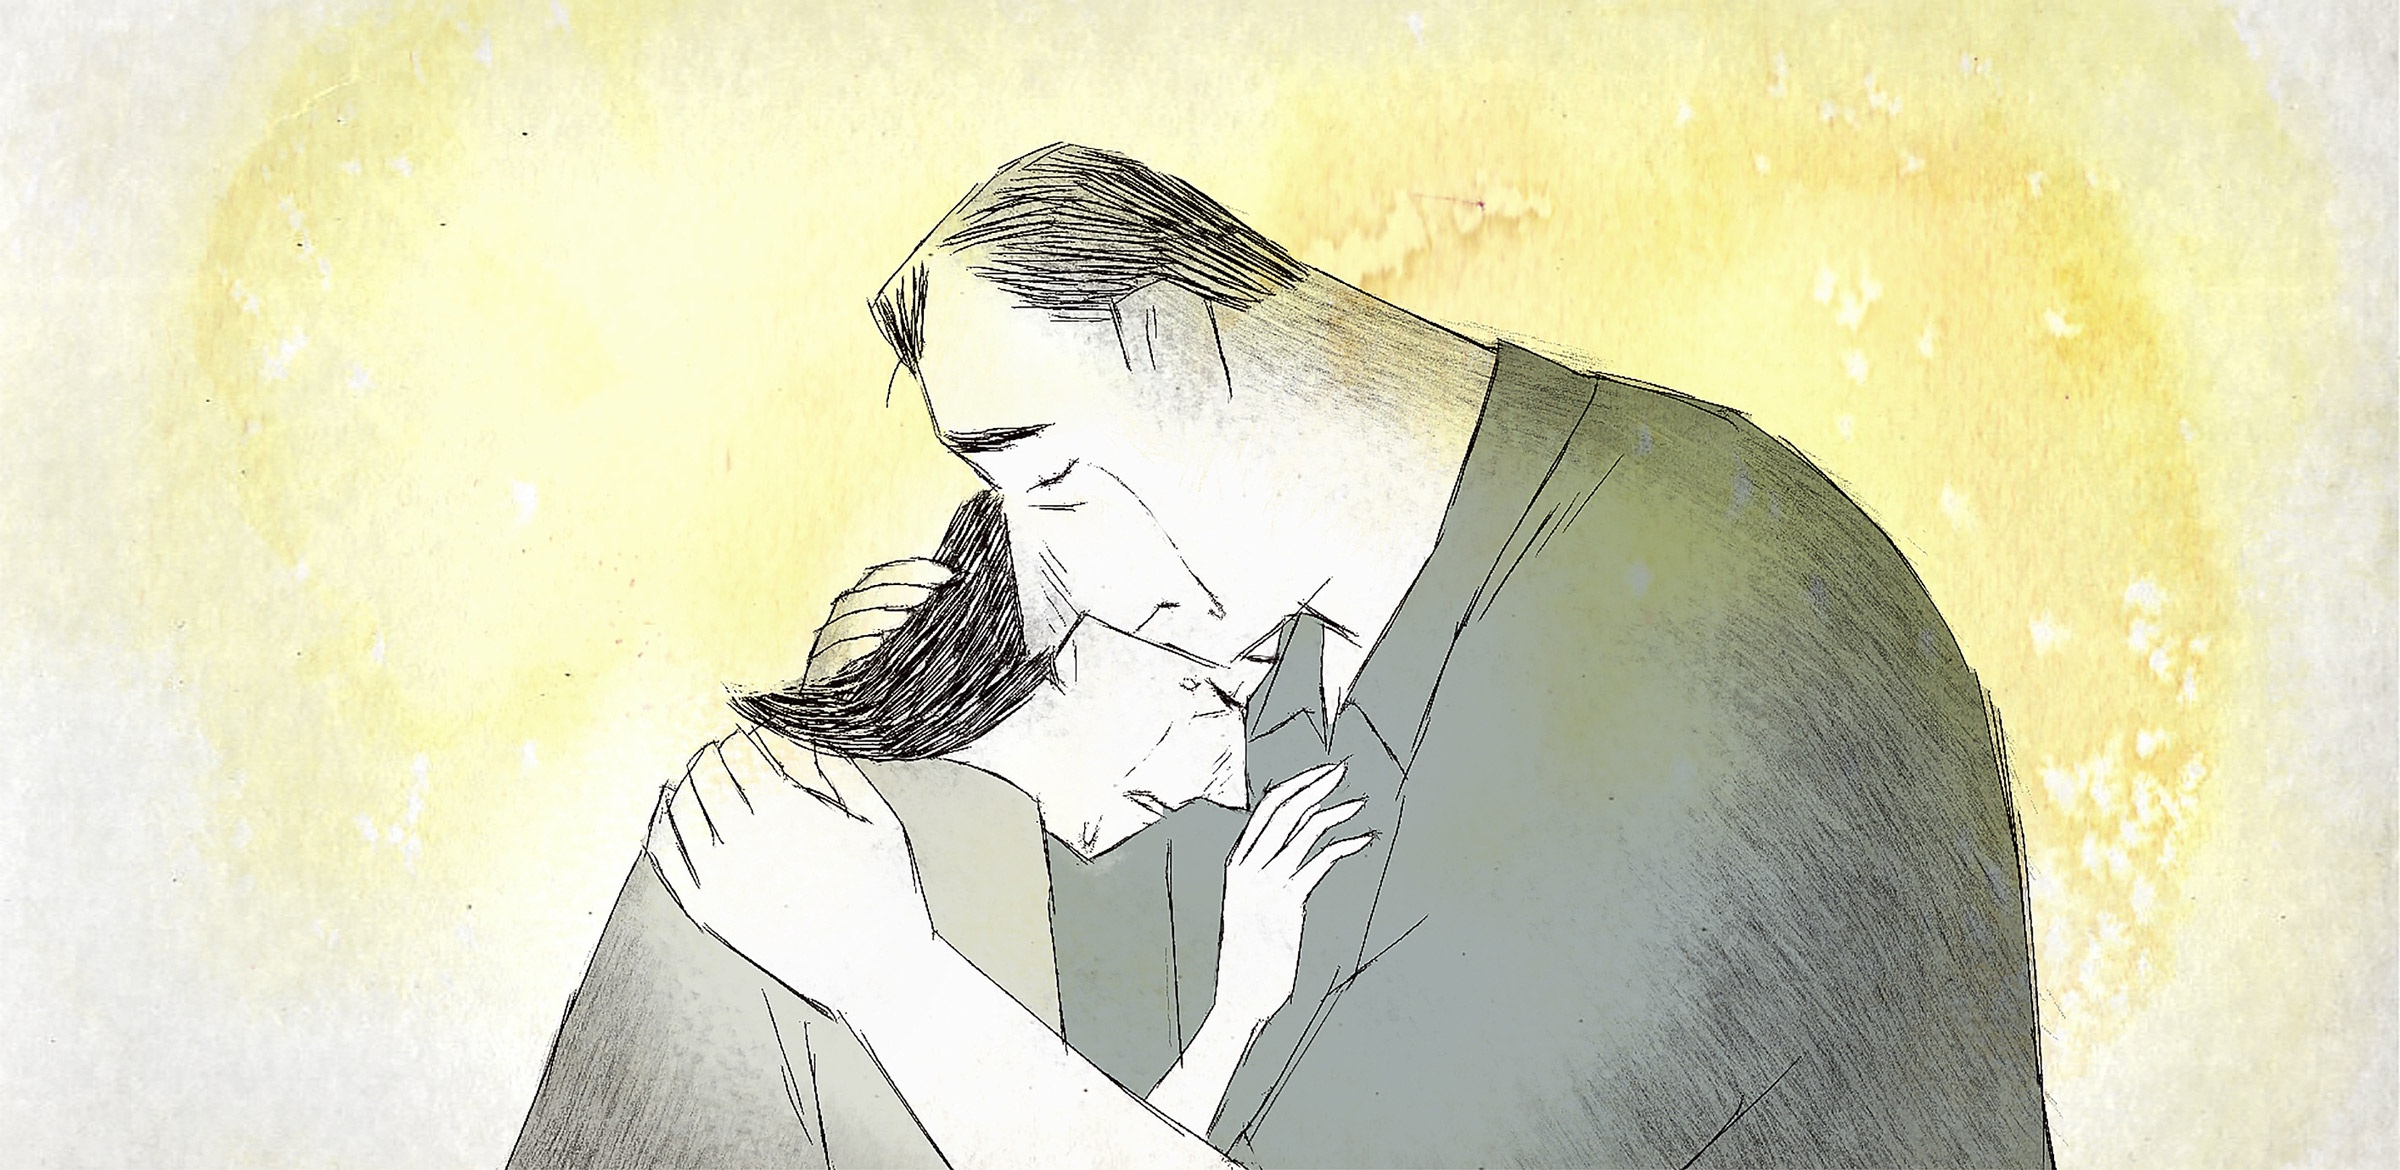 A still from If Anything Happens I Love You. The couple is pictured grieving, in an embrace.